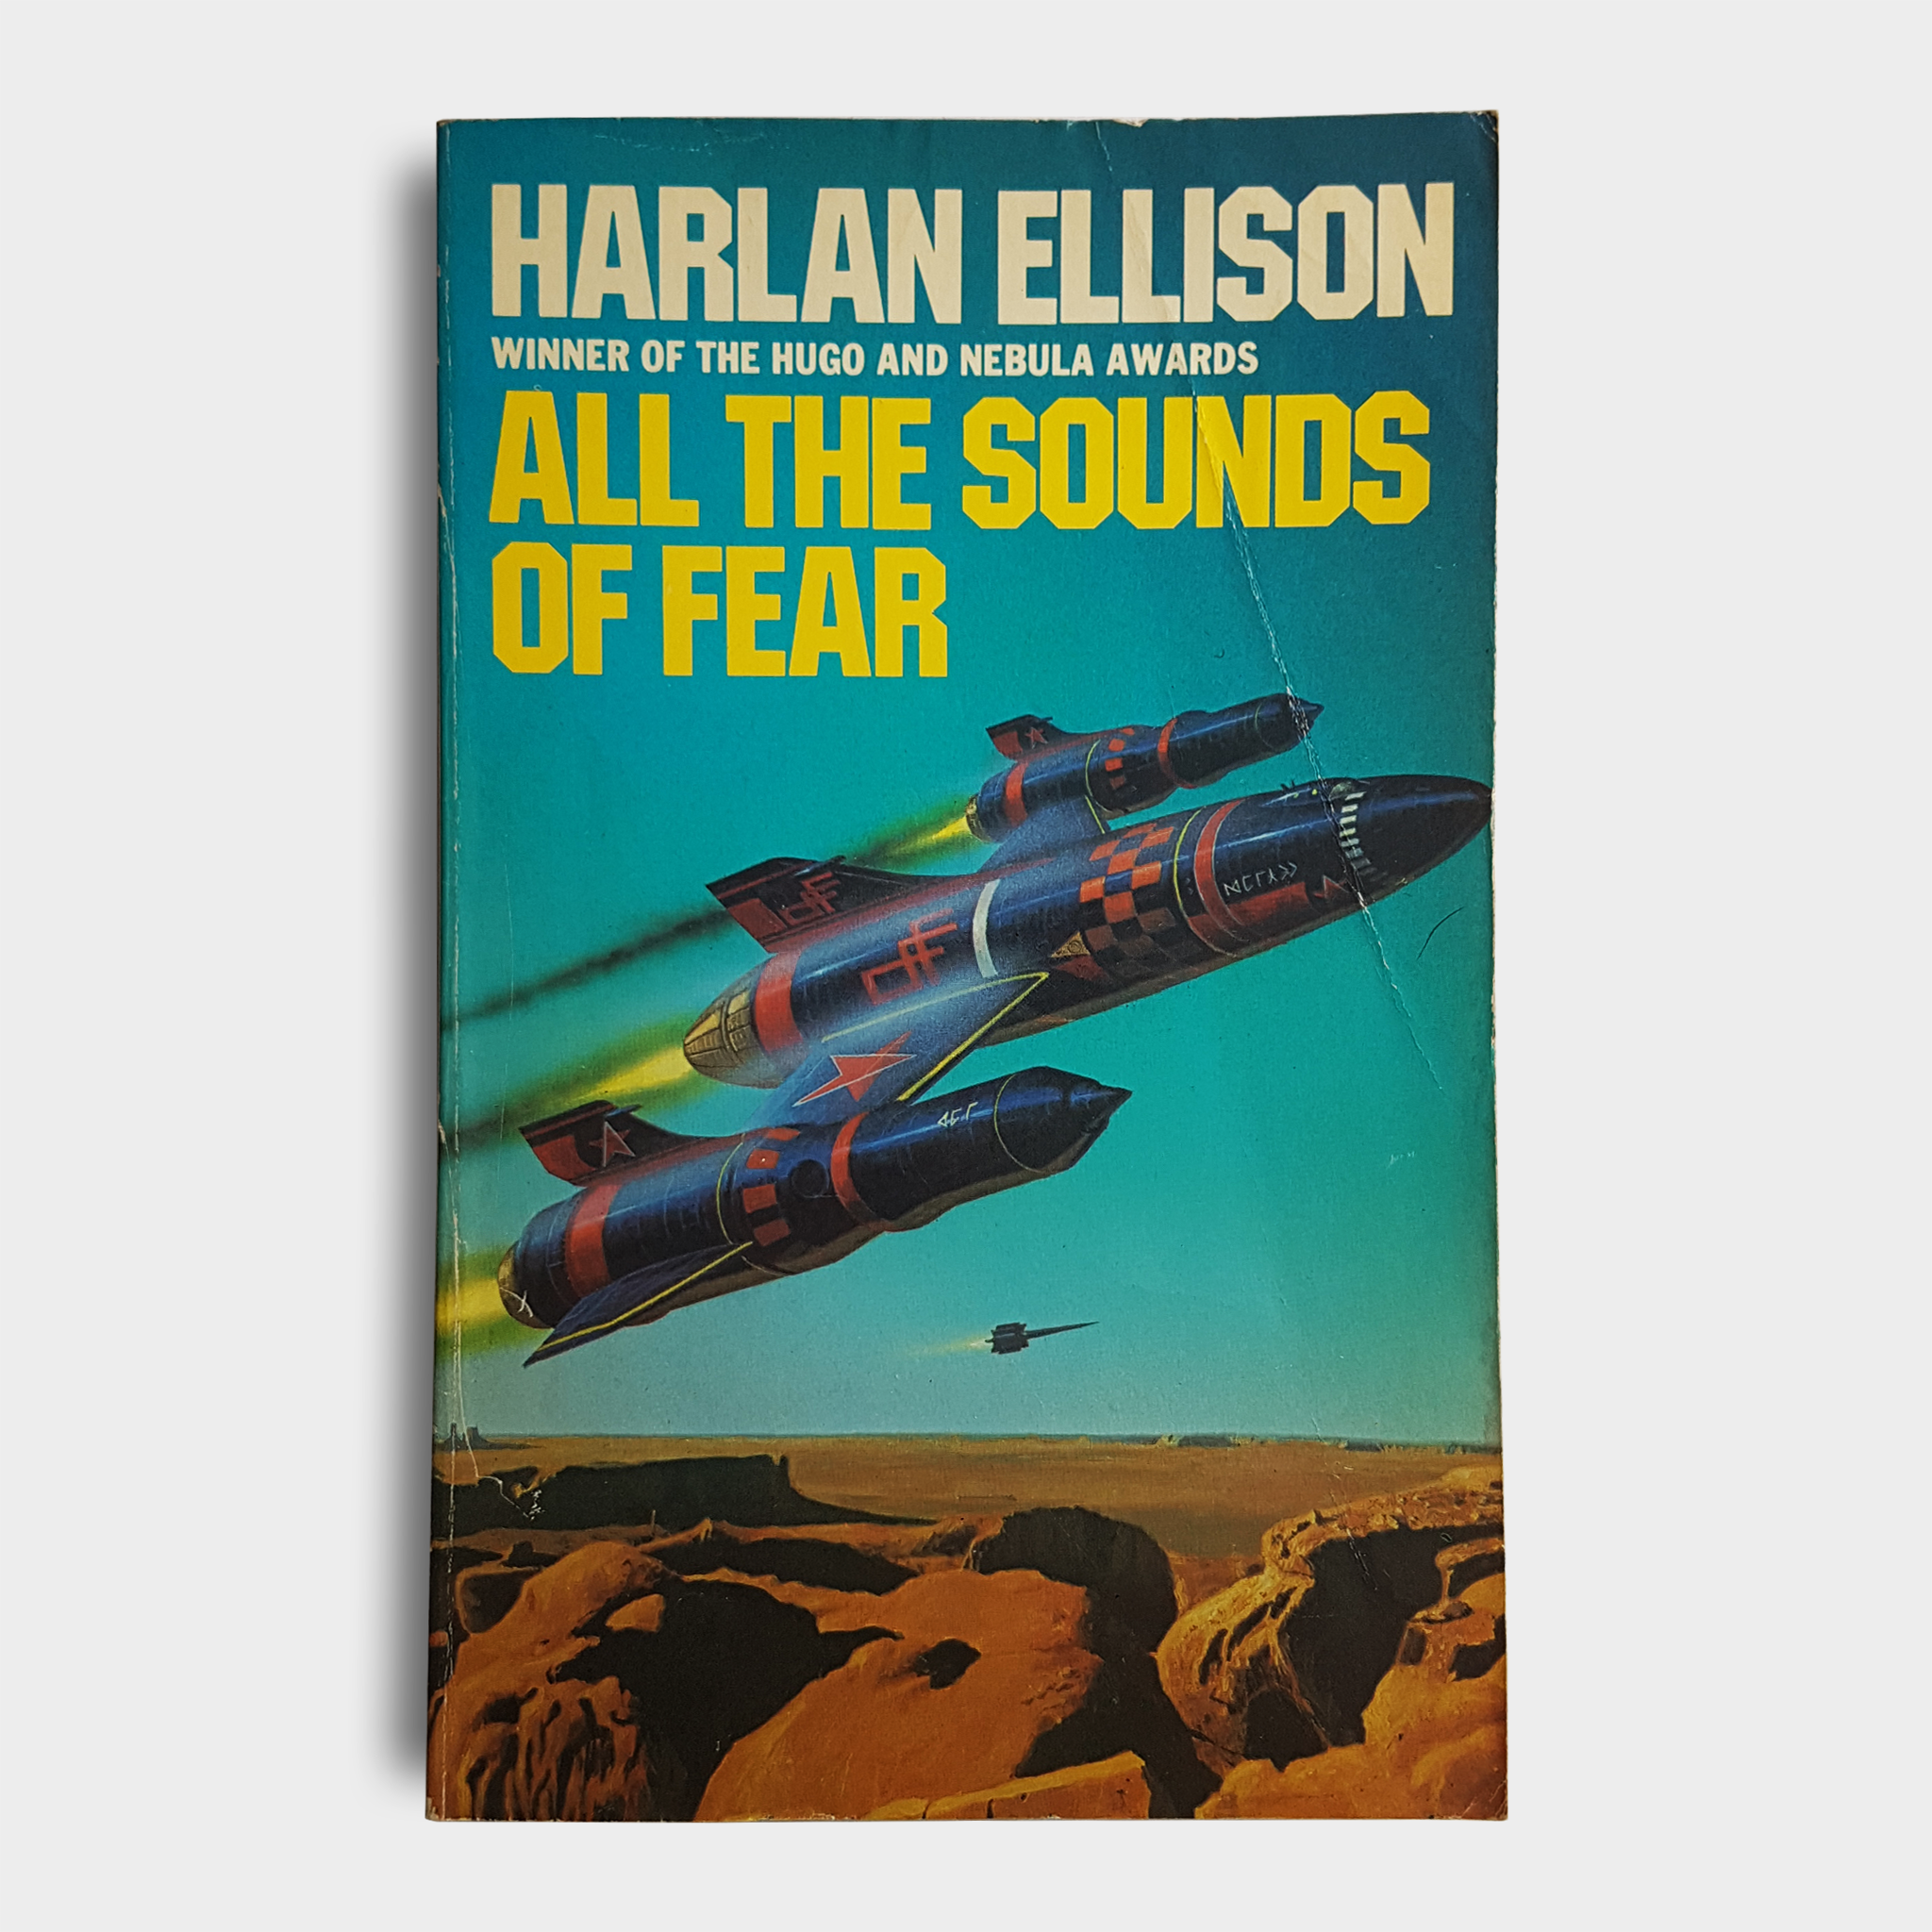 Harlan Ellison - All The Sounds of Fear